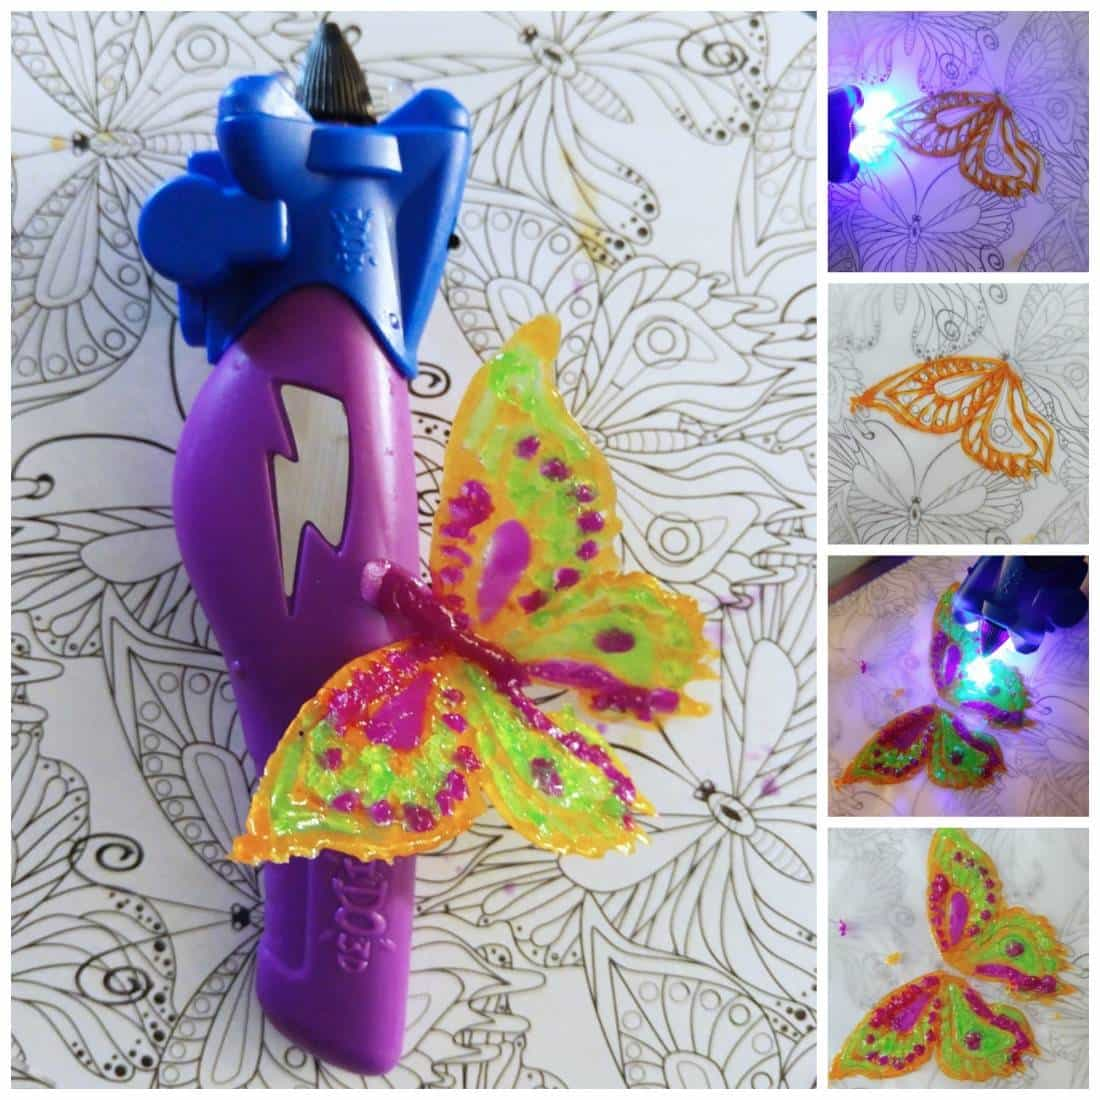 Kids And Adults Alike Will Love This Cool New Pen From Ido3d